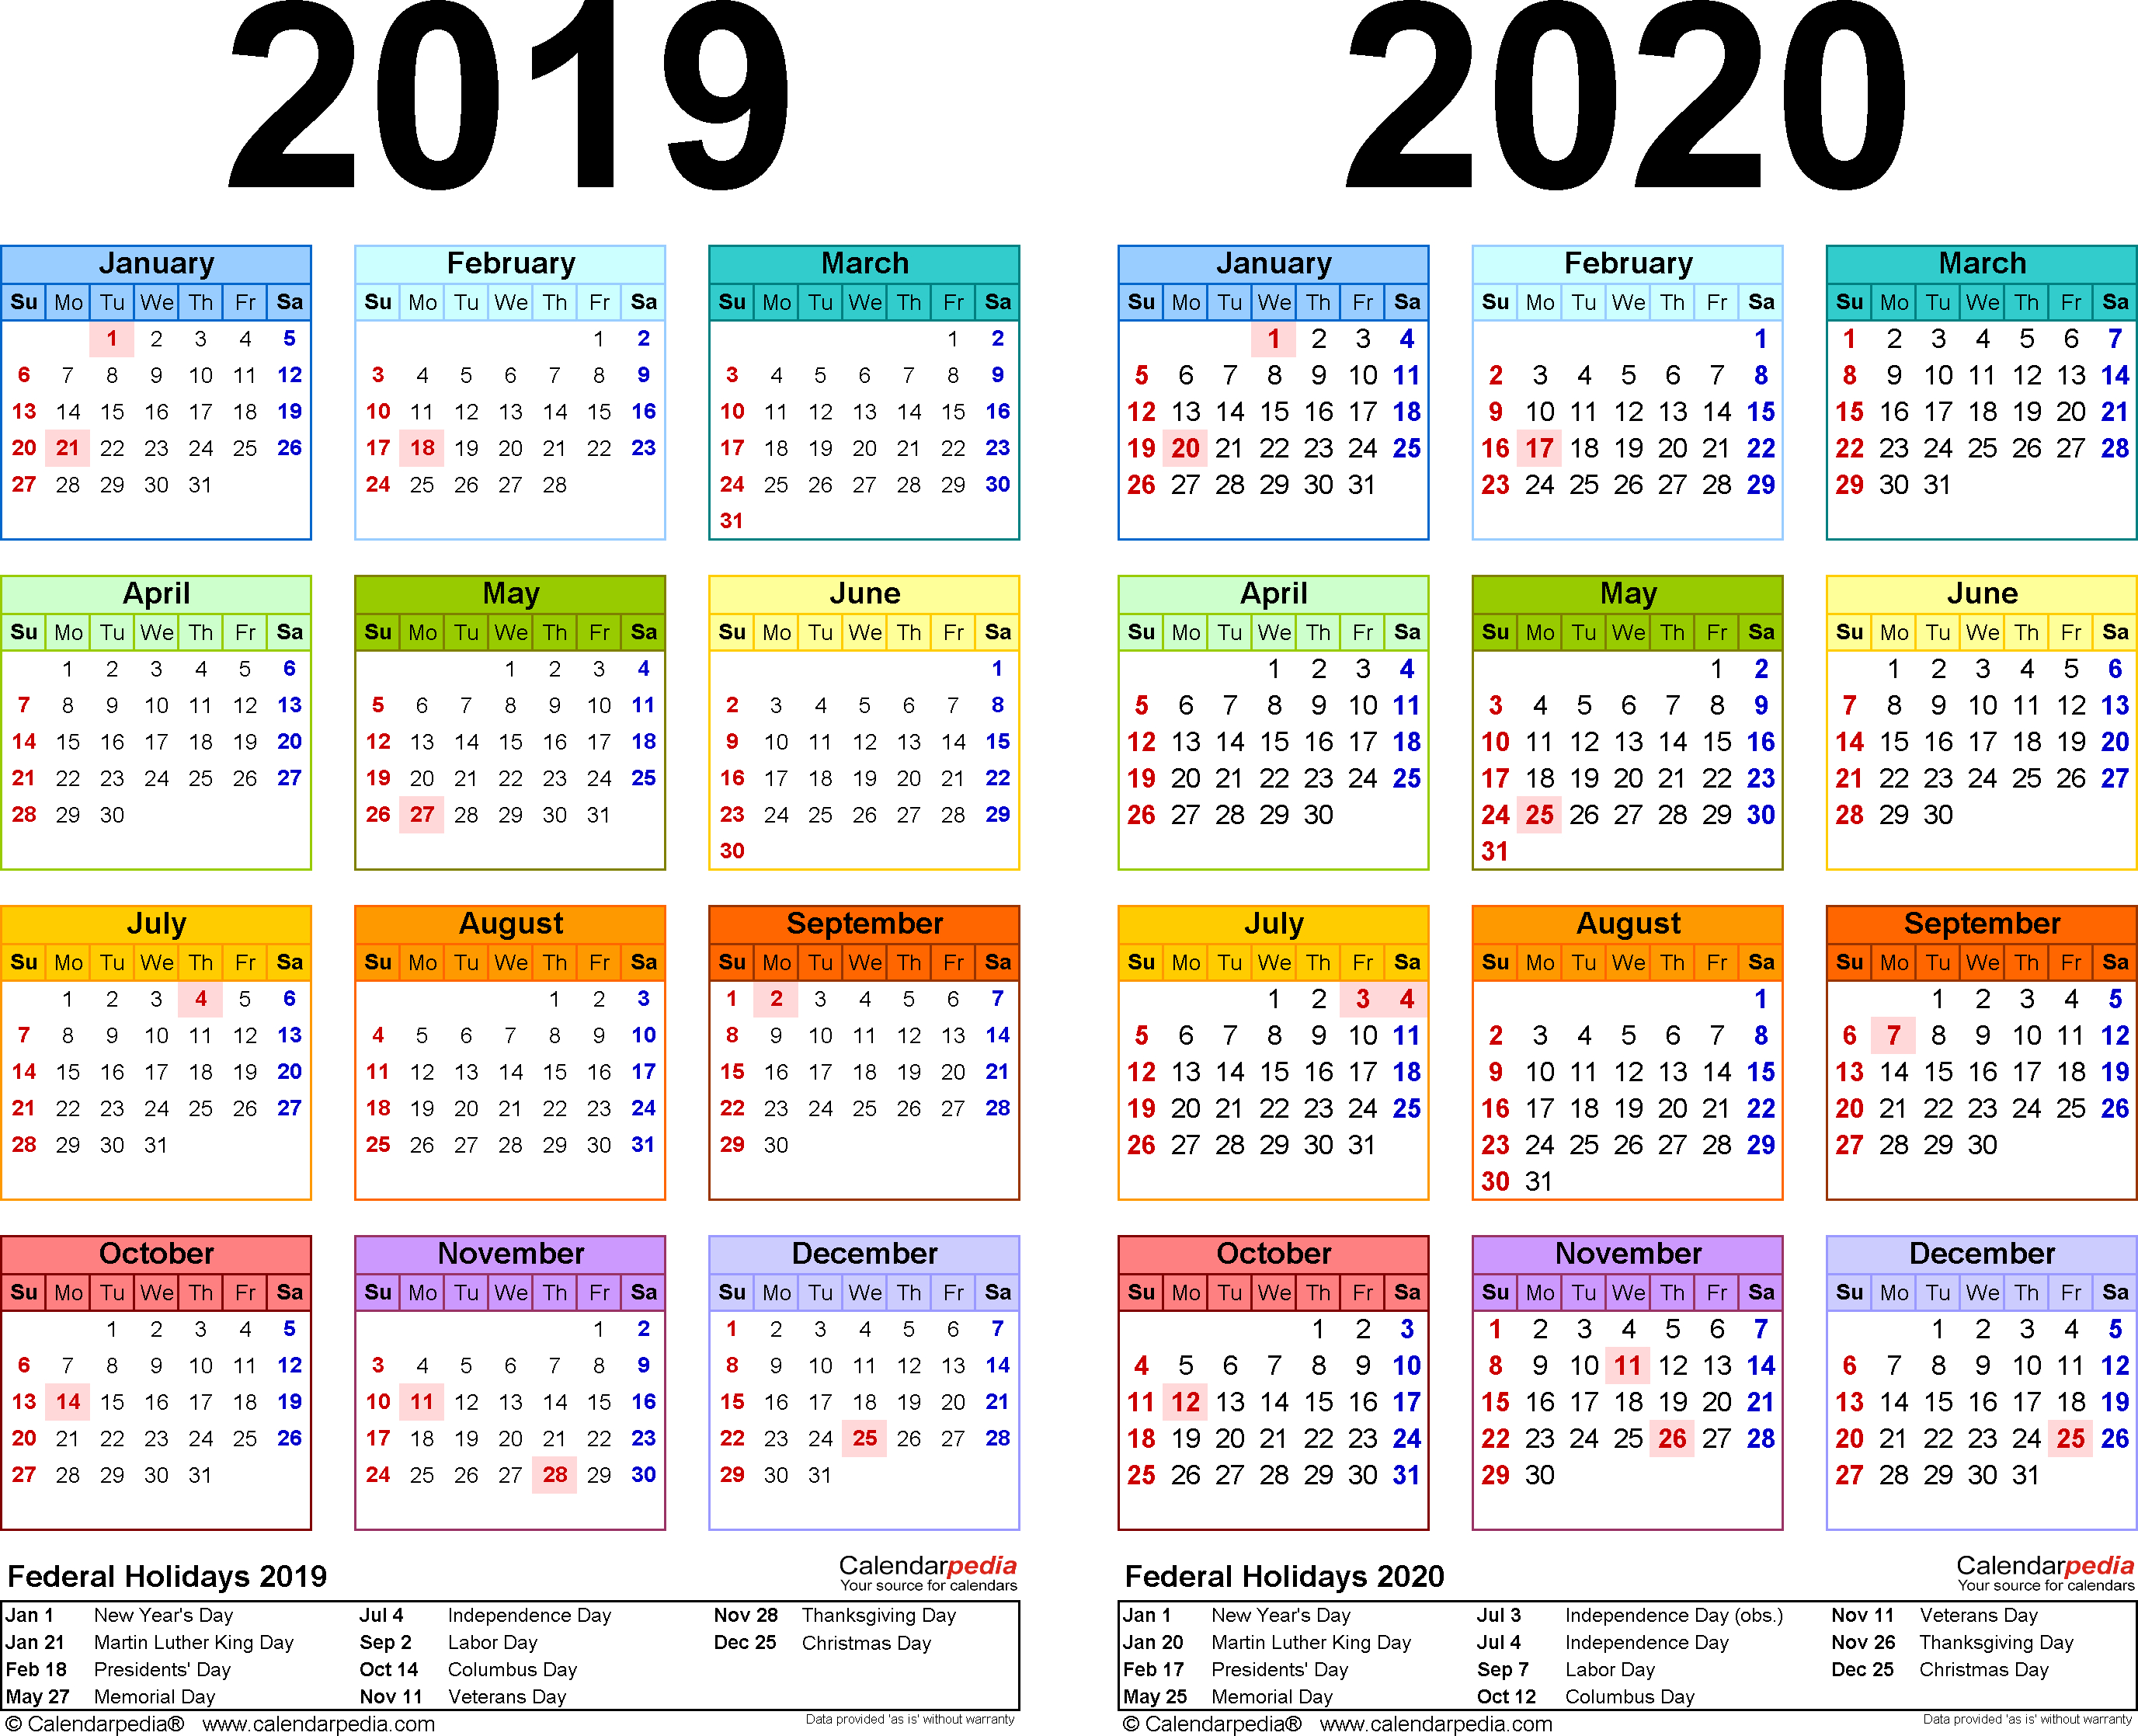 2019-2020 Calendar - Free Printable Two-Year Word Calendars throughout Free Fillable Printable 2019 2020 Calendar